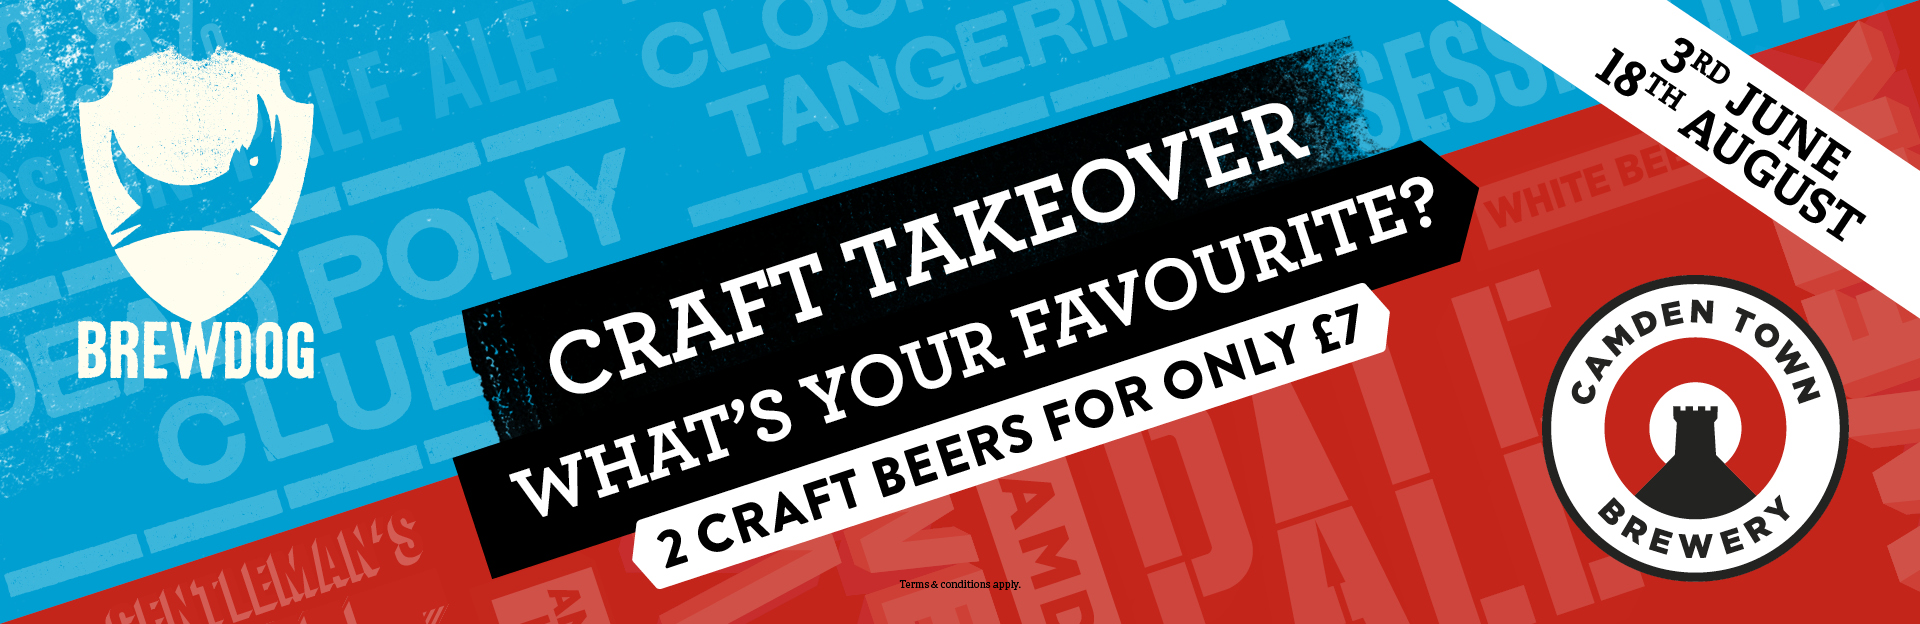 Craft Takeover at The Railway